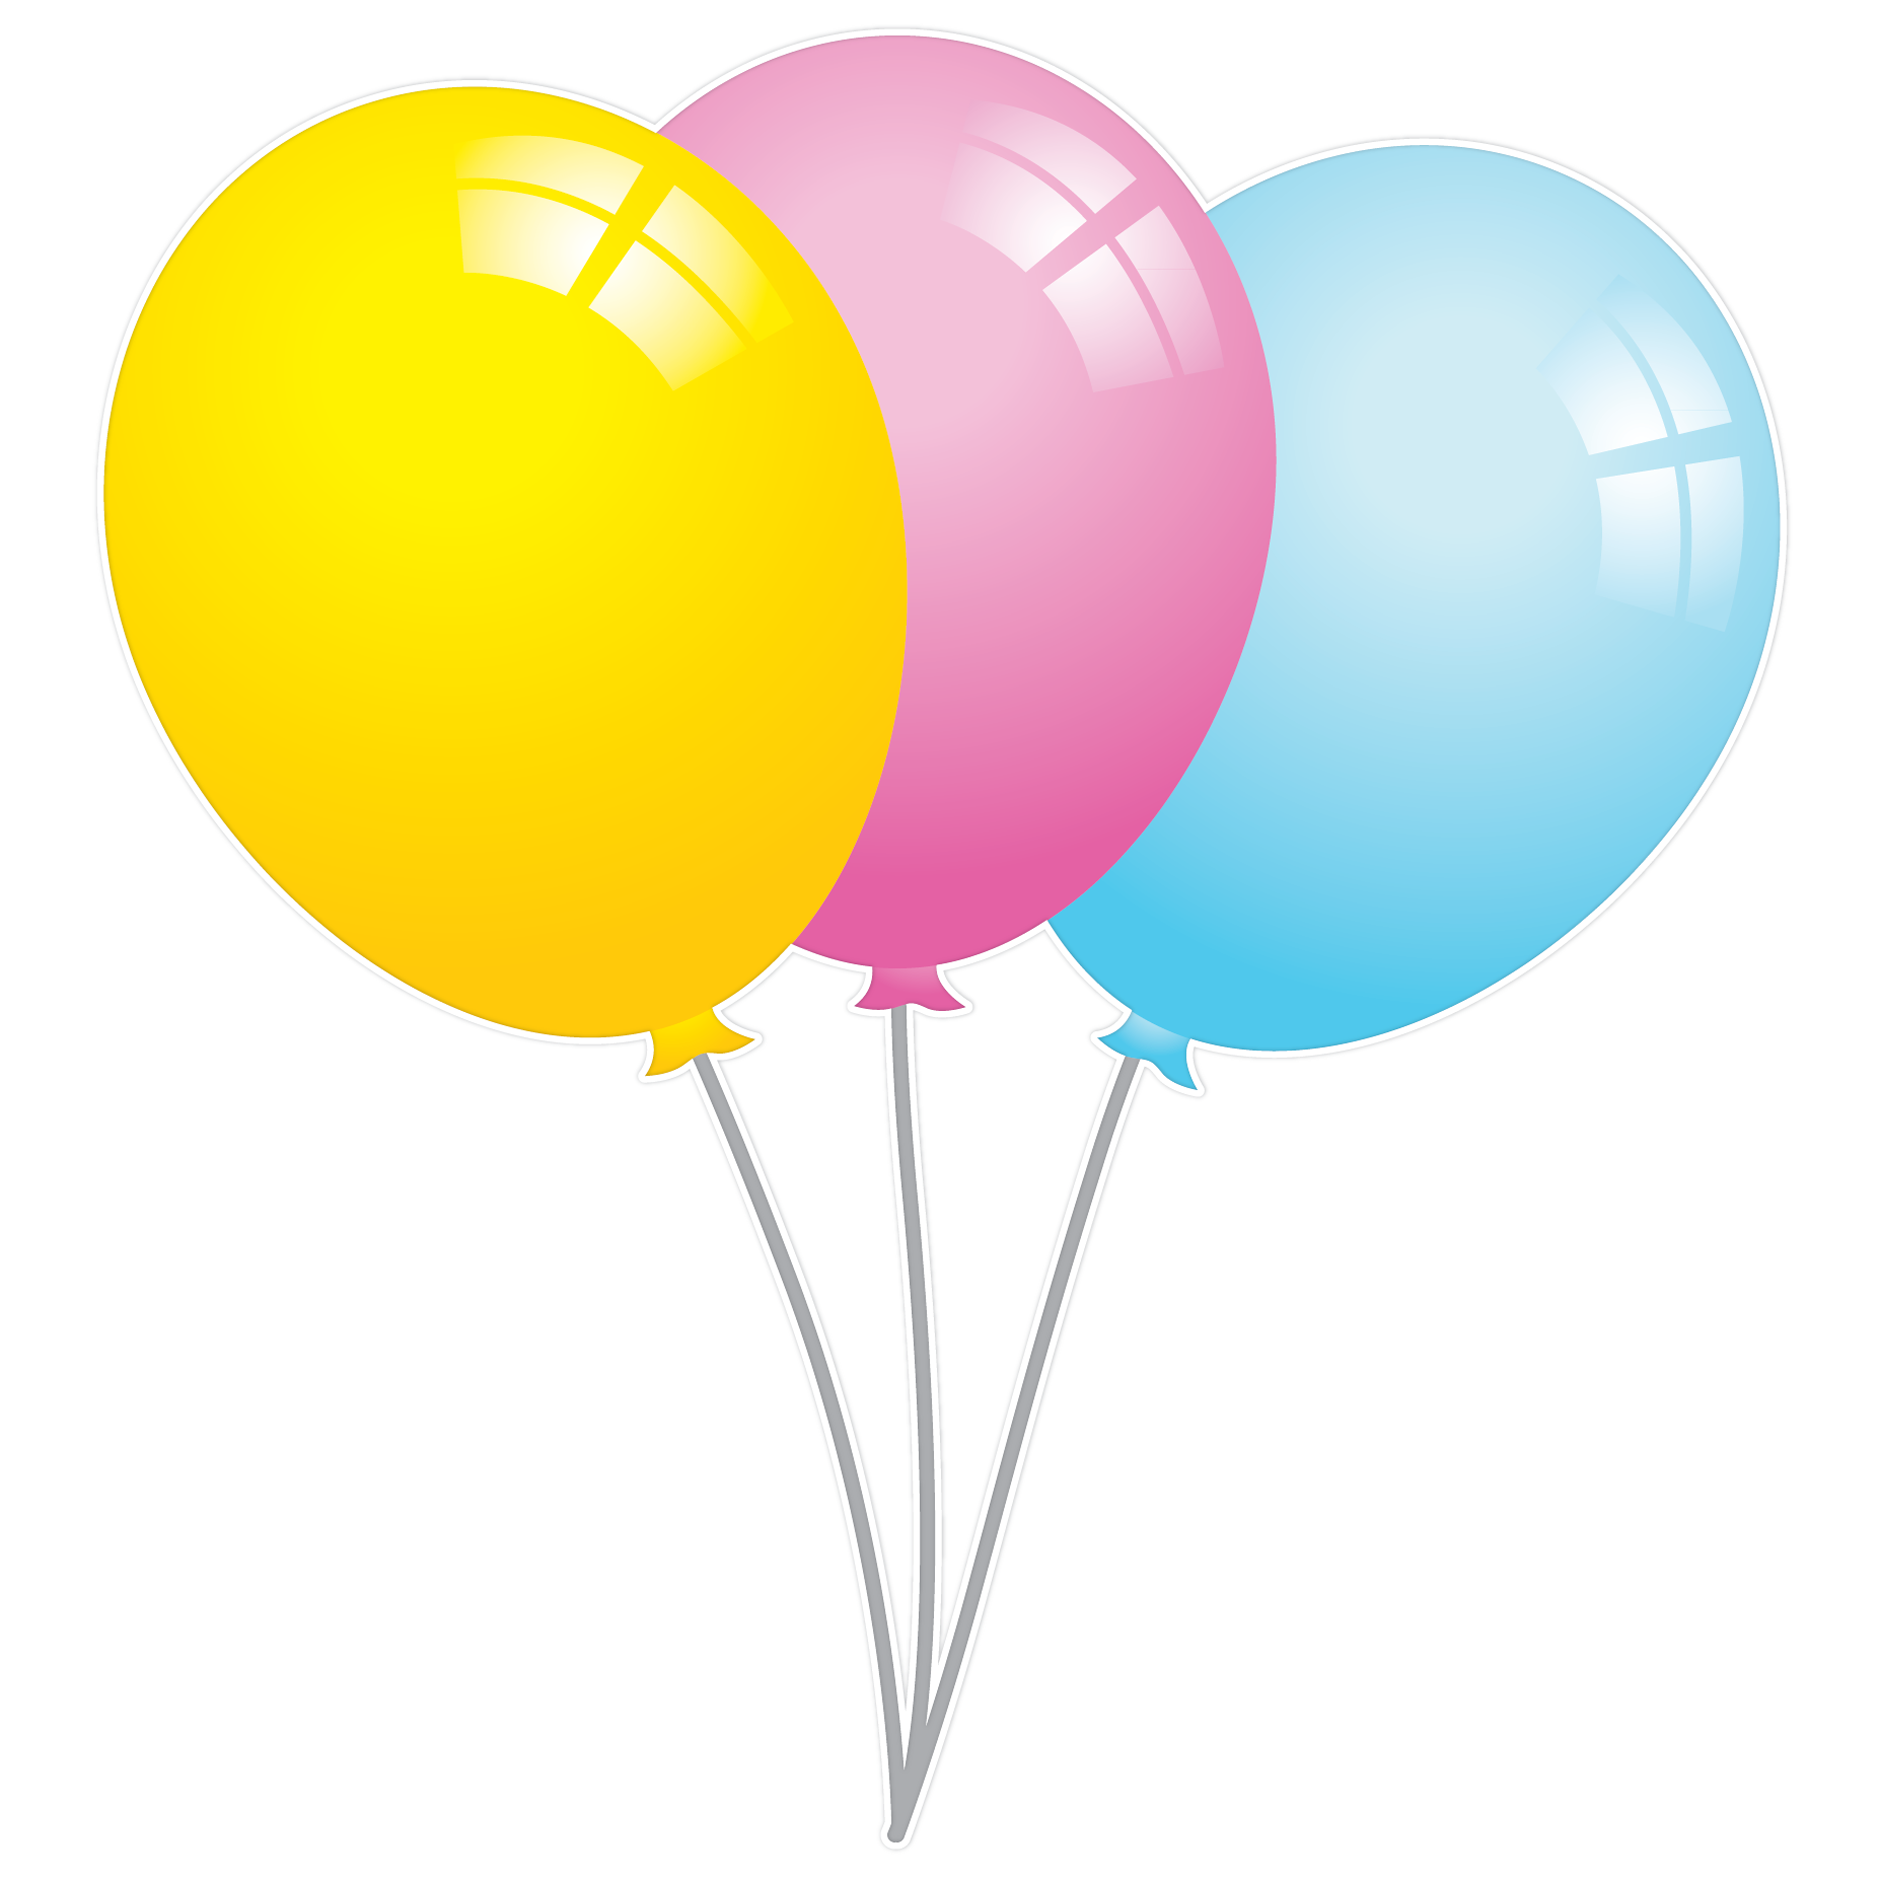 Birthday Balloons Png.